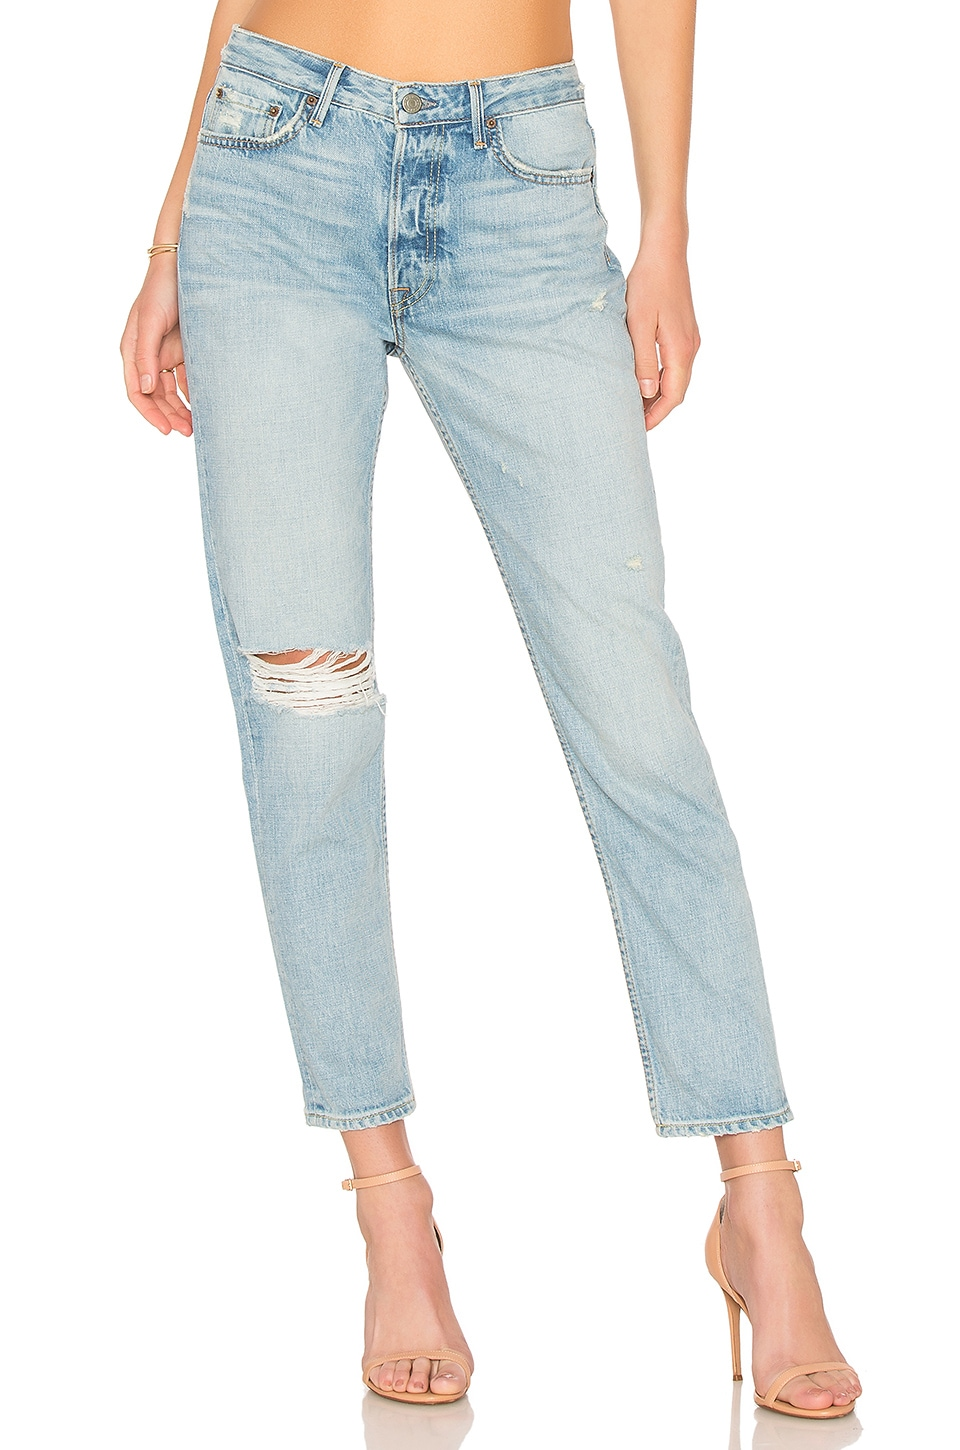 GRLFRND Kiara Slouchy Tomboy Jean in Tripped Up